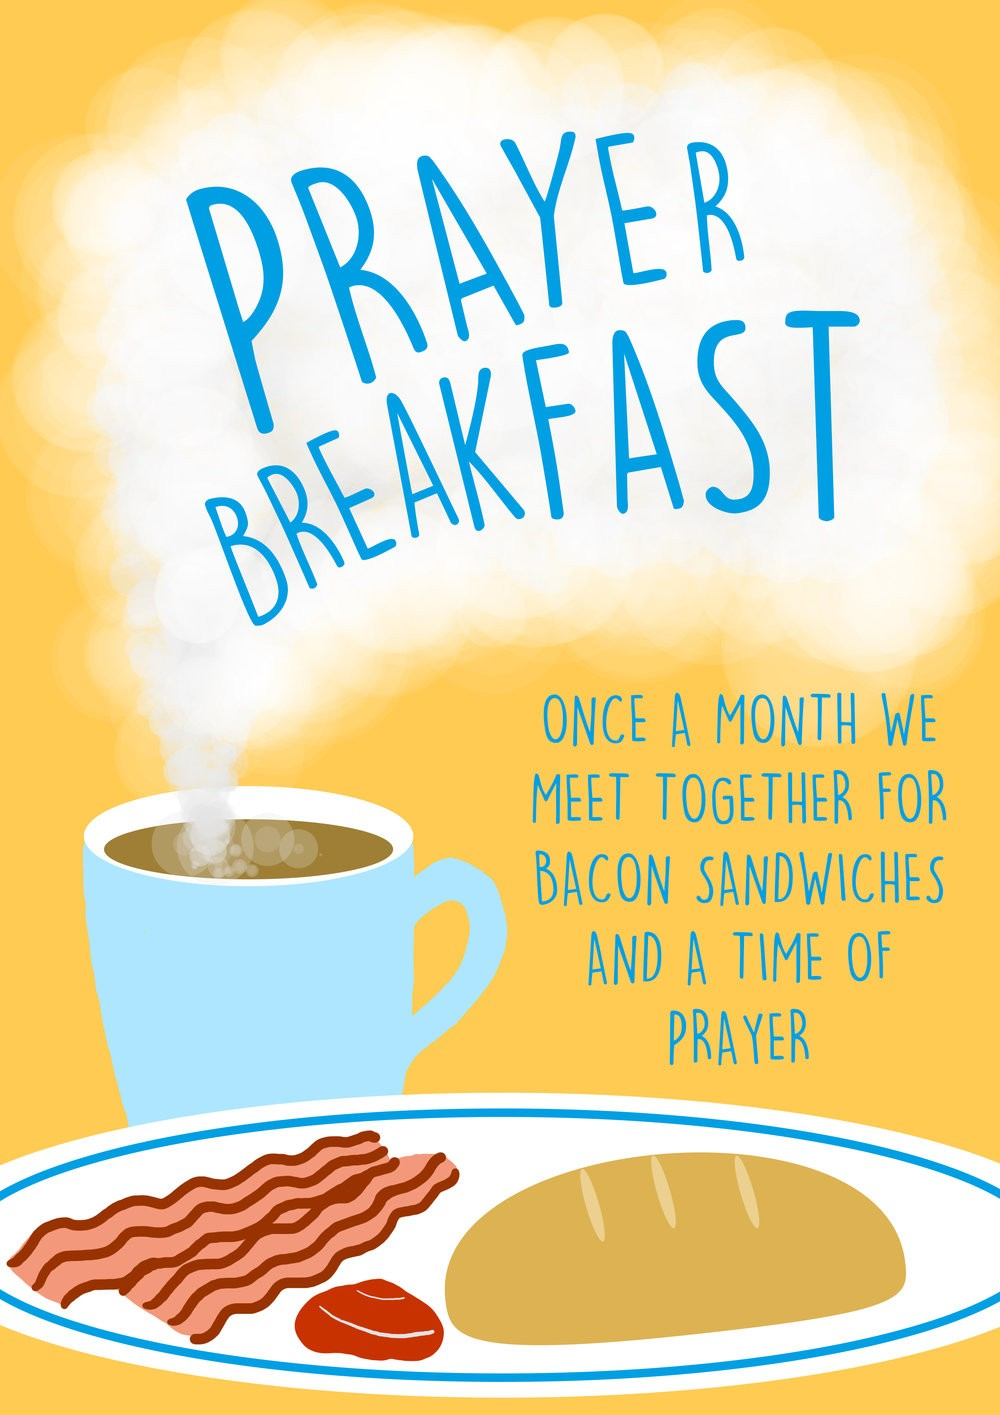 Prayer Breakfast Clip Art.